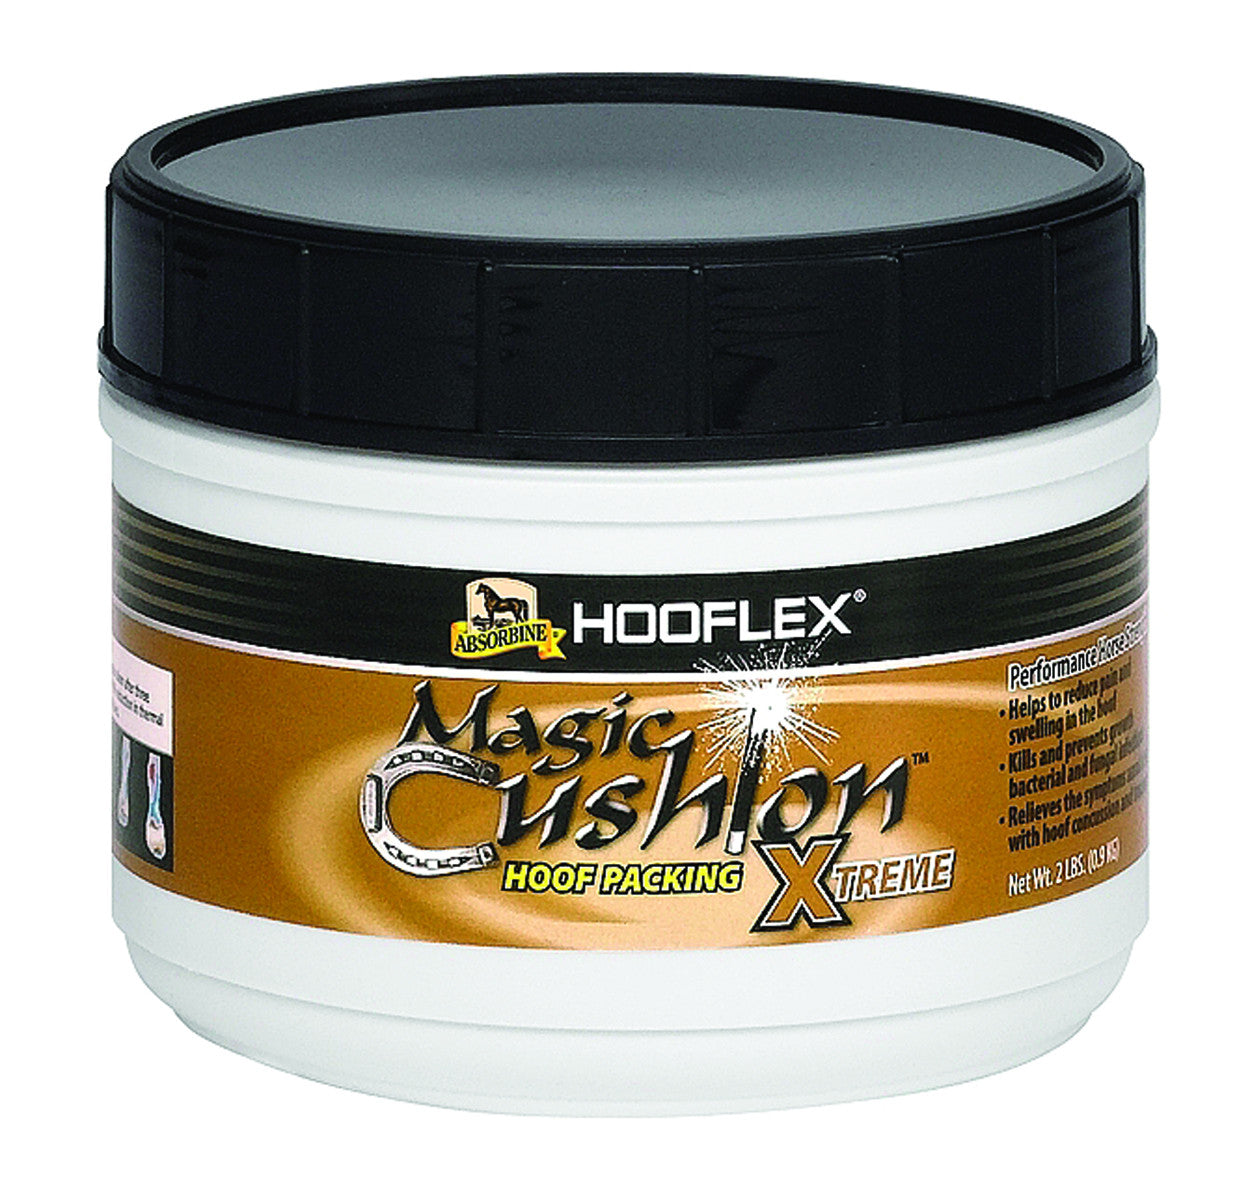 Absorbine Hooflex Magic Cushion xTreme Hoof Packing